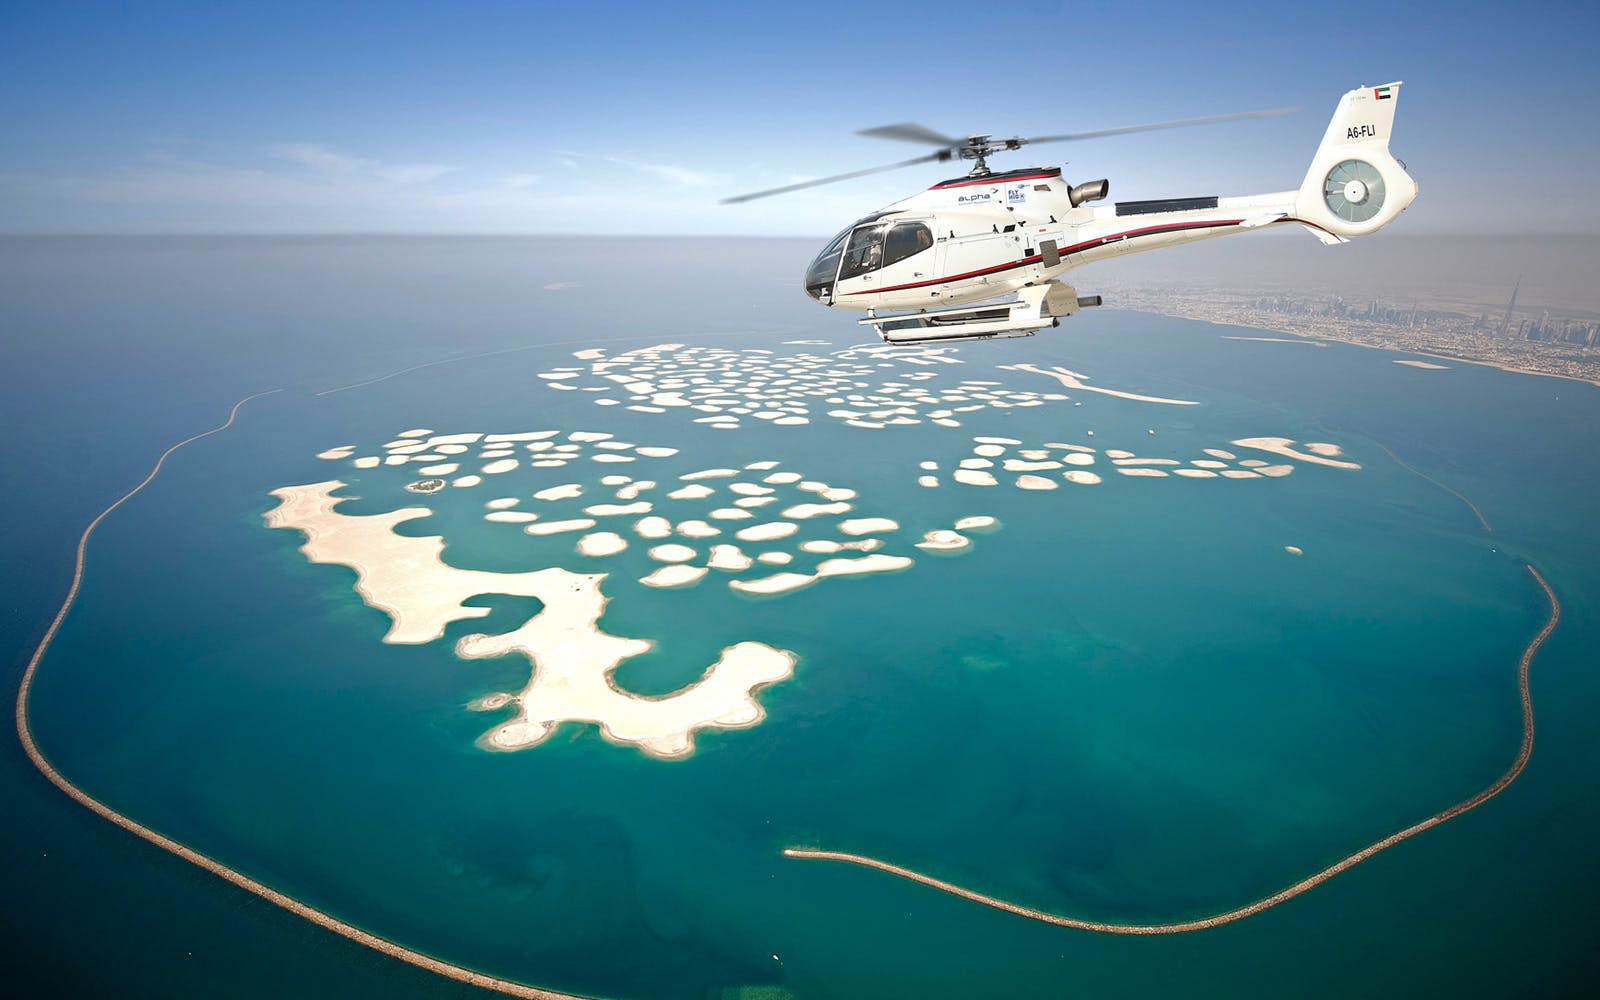 Luxury Helicopter Tour - 25 Minutes